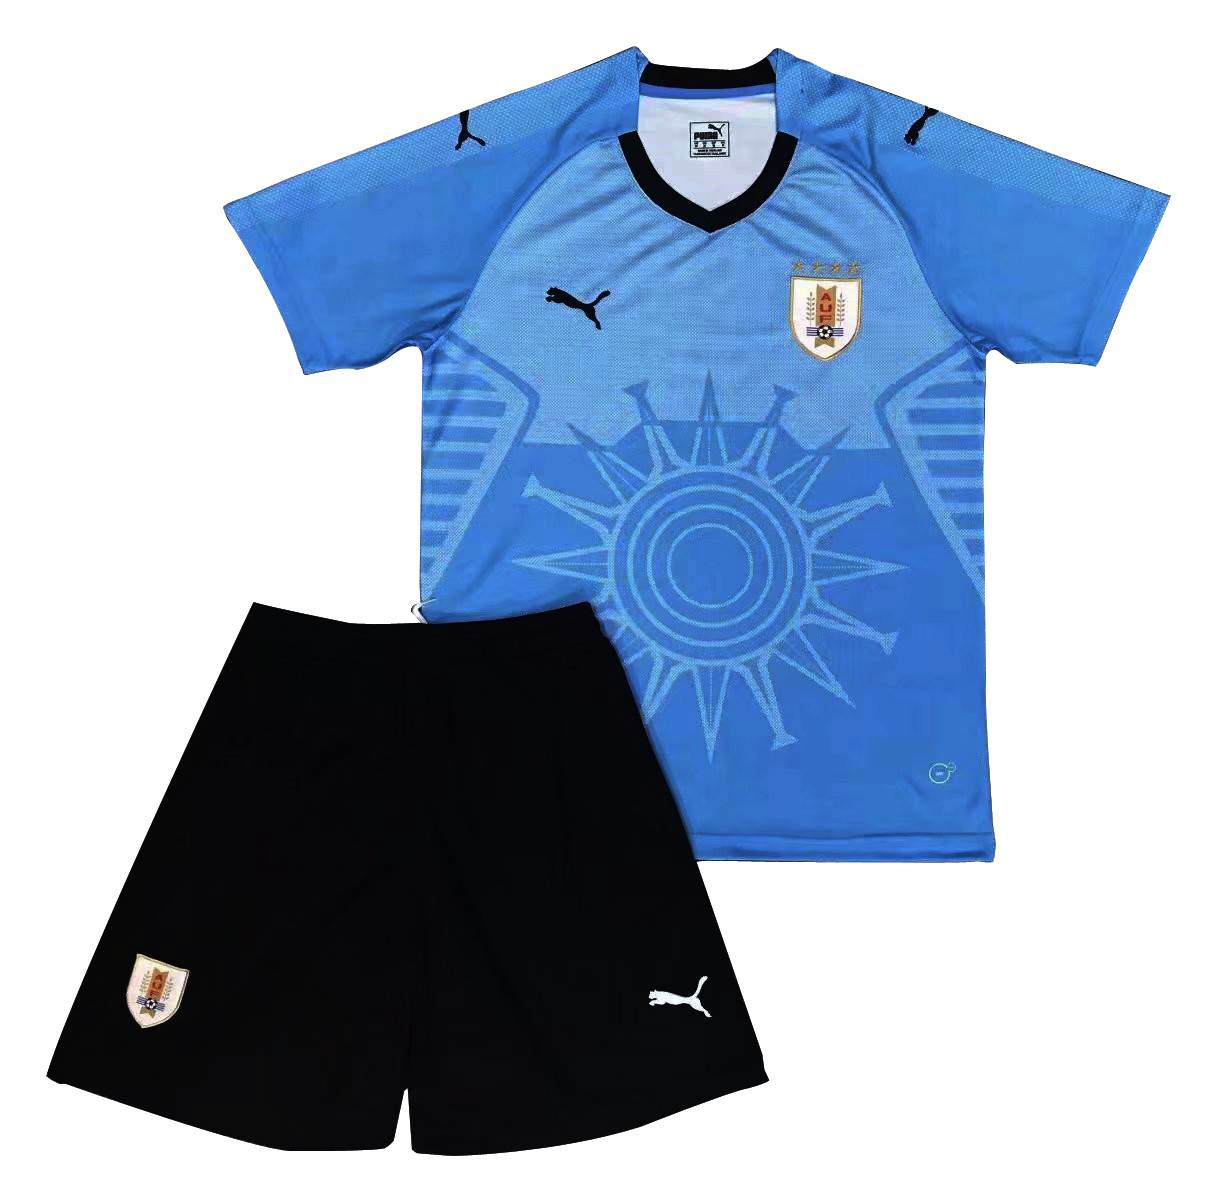 Uruguay 2018 FIFA World Cup Home Kids Soccer Kit Children Shirt And Shorts